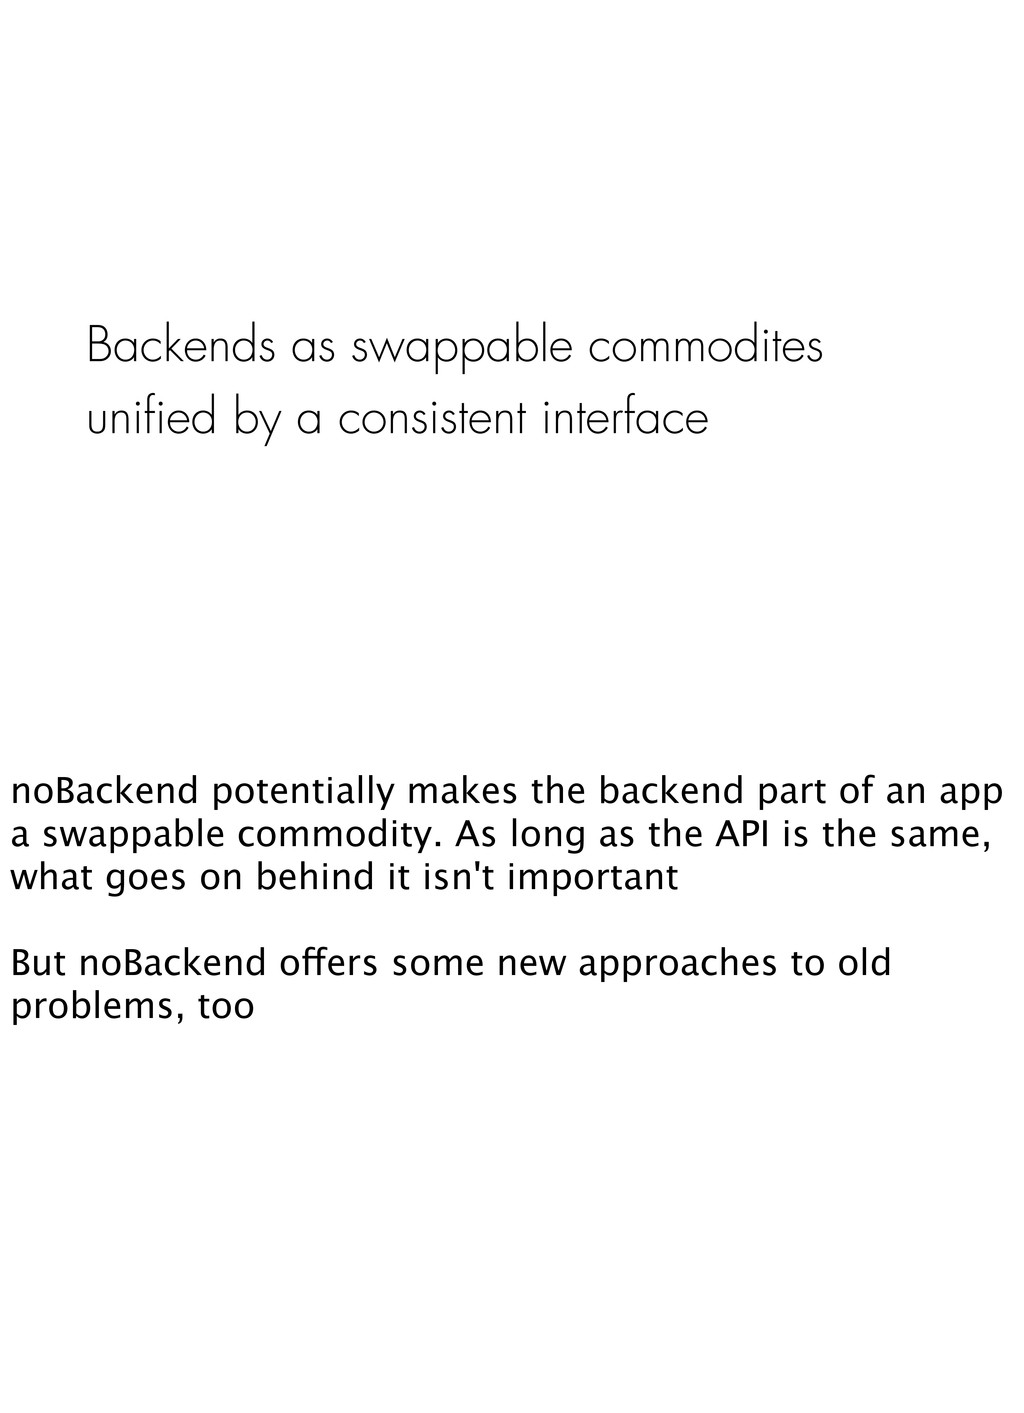 Backends as swappable commodites unified by a co...